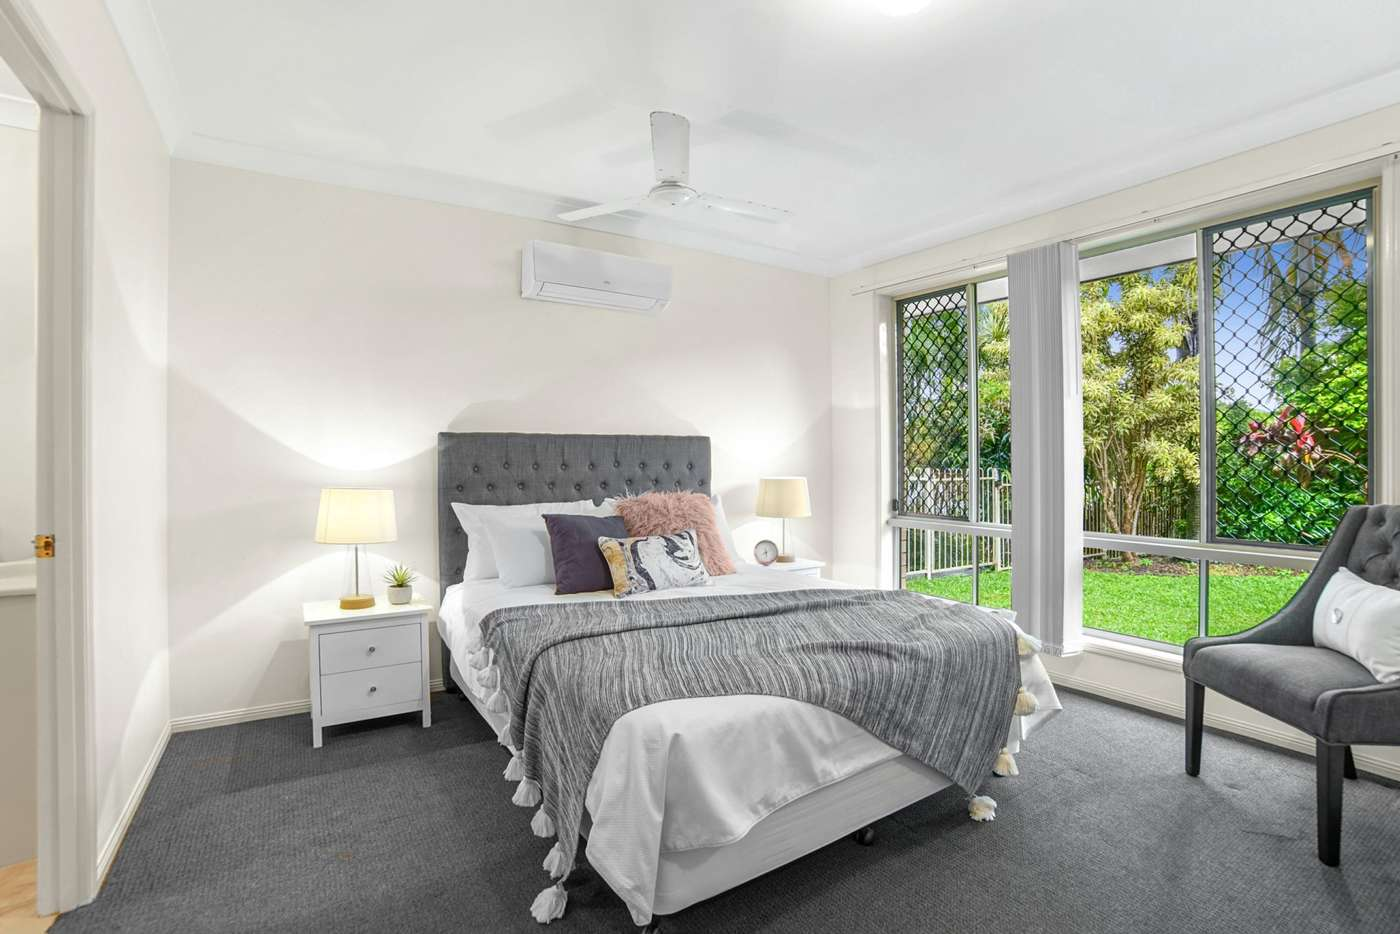 Sixth view of Homely house listing, 11 Taringa Street, Brinsmead QLD 4870